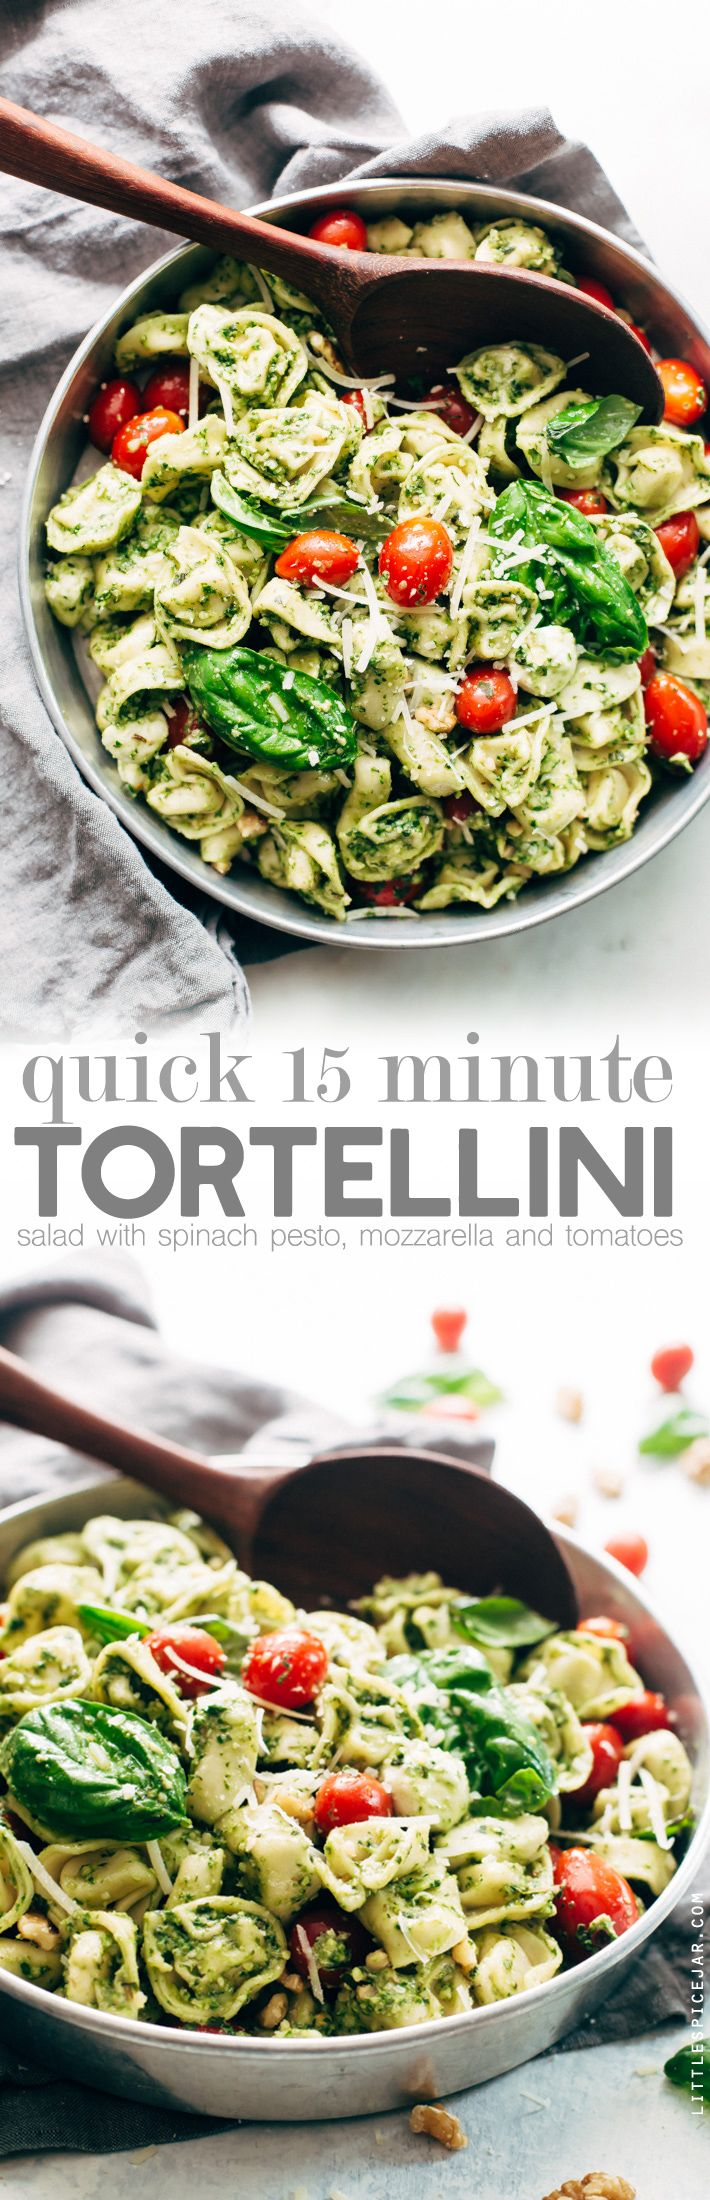 15 Minute Spinach Pesto Tortellini Salad - a quick and easy pasta salad that's perfect for picnics, potlucks, and barbecues! Ready in just 15 minutes! #tortellinisalad #pasta #pastasalad #spinachpesto | Littlespicejar.com sponsored by @cawalnuts